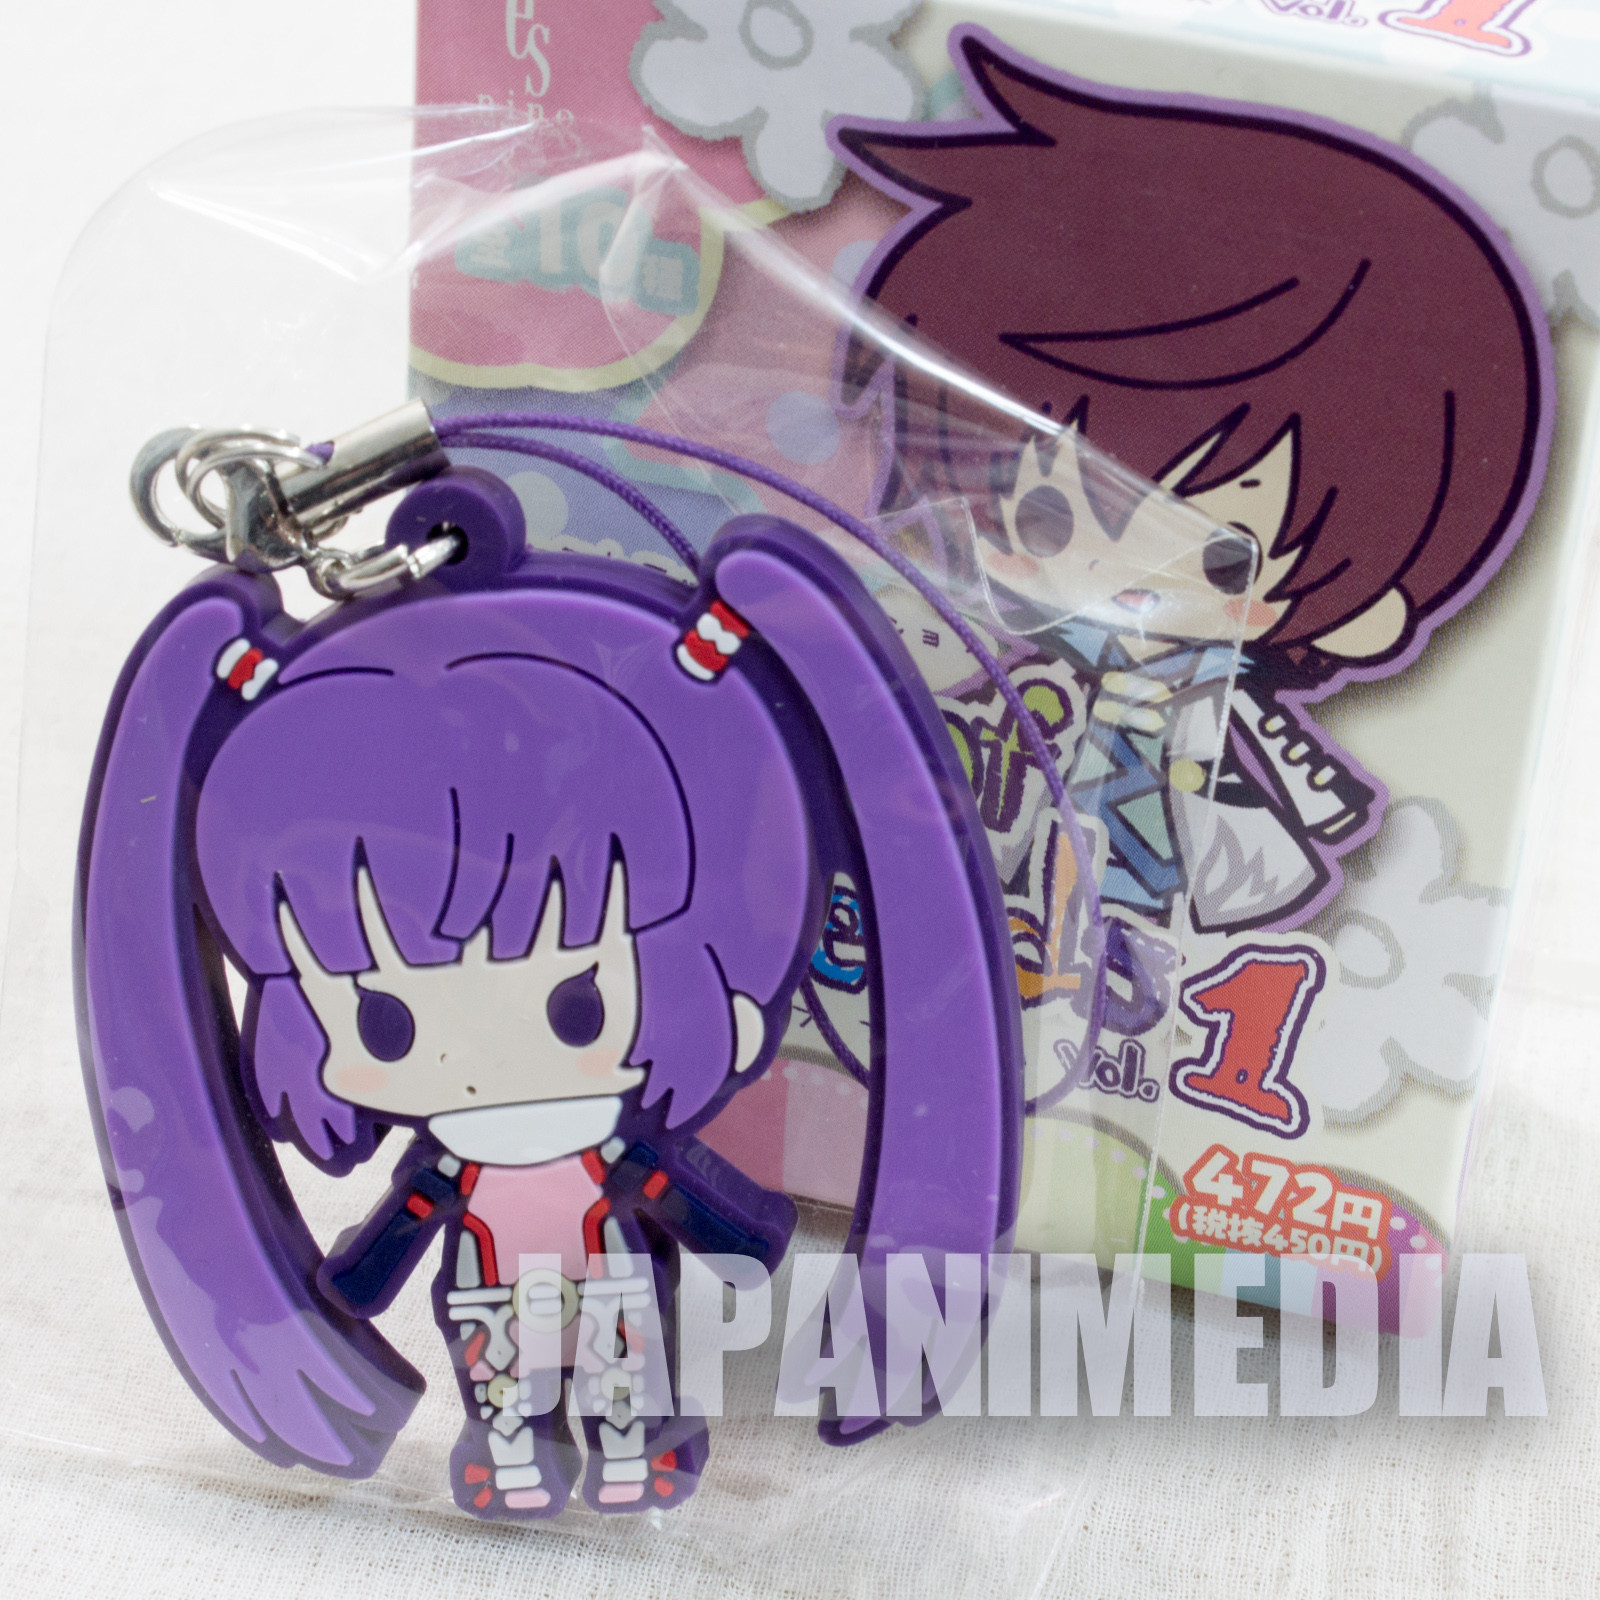 Tales of Fantasia Series Sophie Lhant Graces Rubber Mascot Strap JAPAN GAME